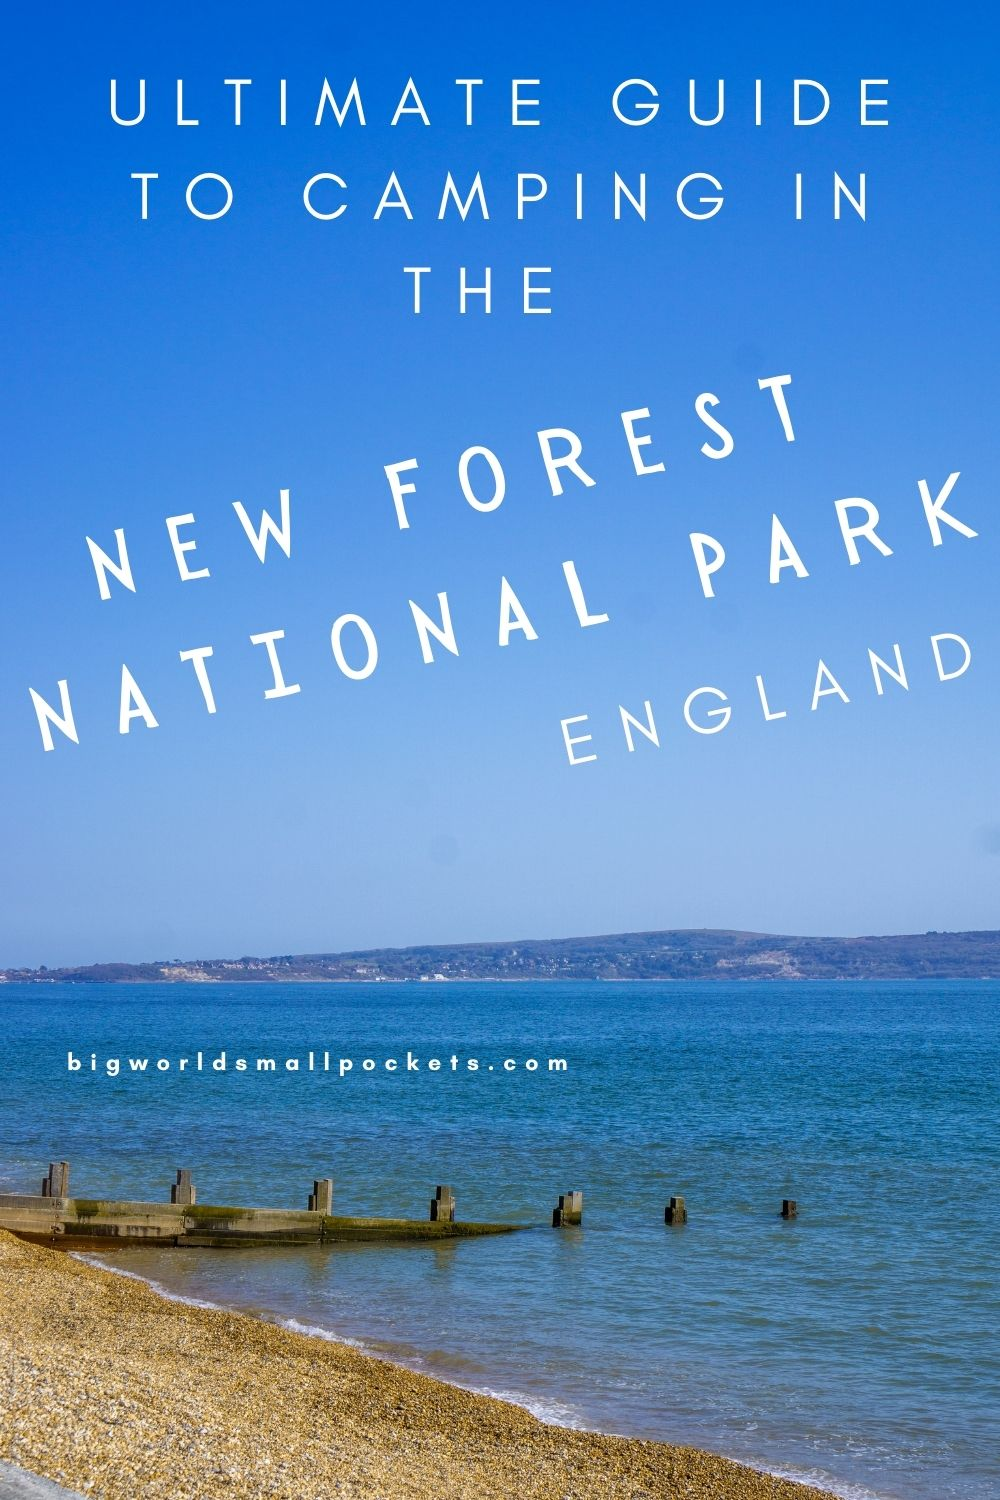 Ultimate Guide to Camping in the New Forest, England